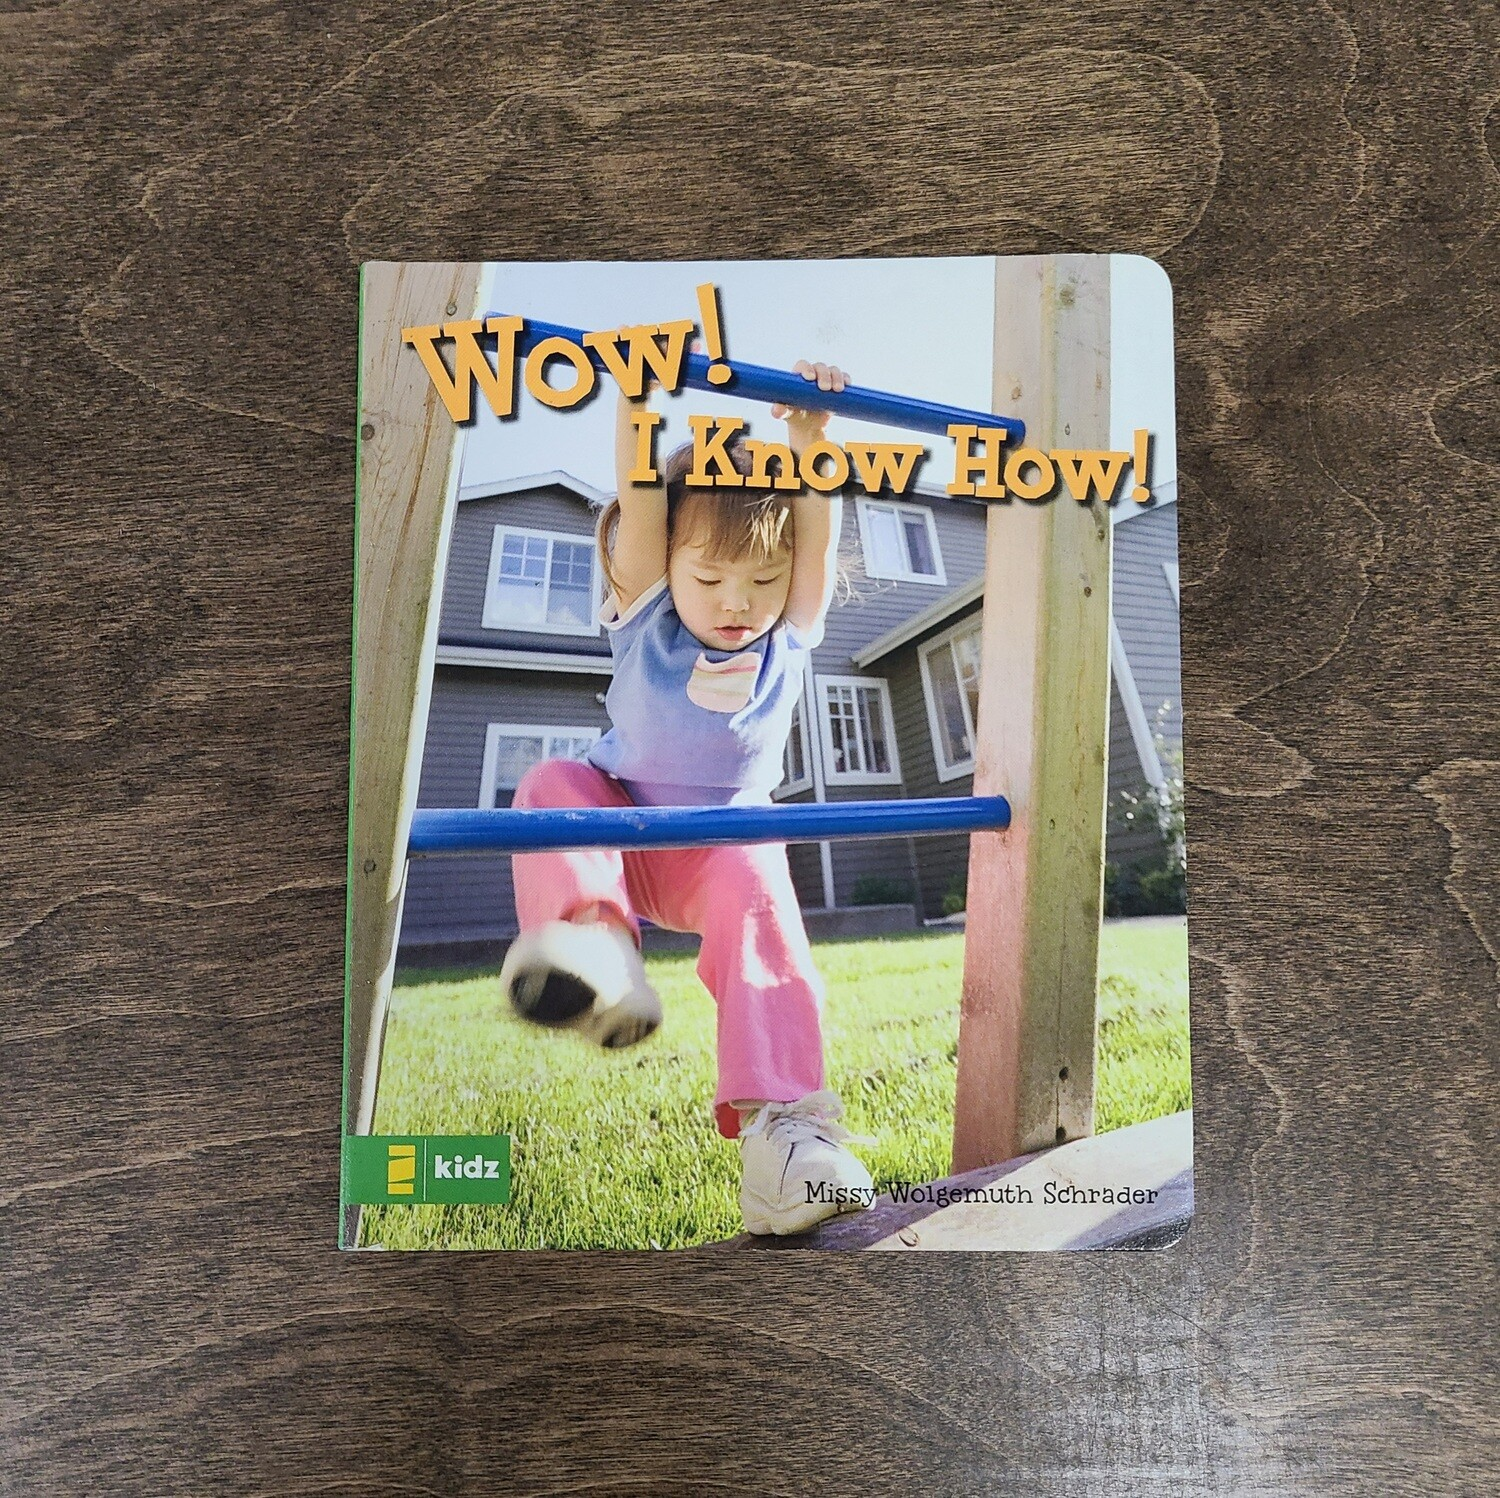 Wow! I Know How! by Missy Wolgemuth Schrader